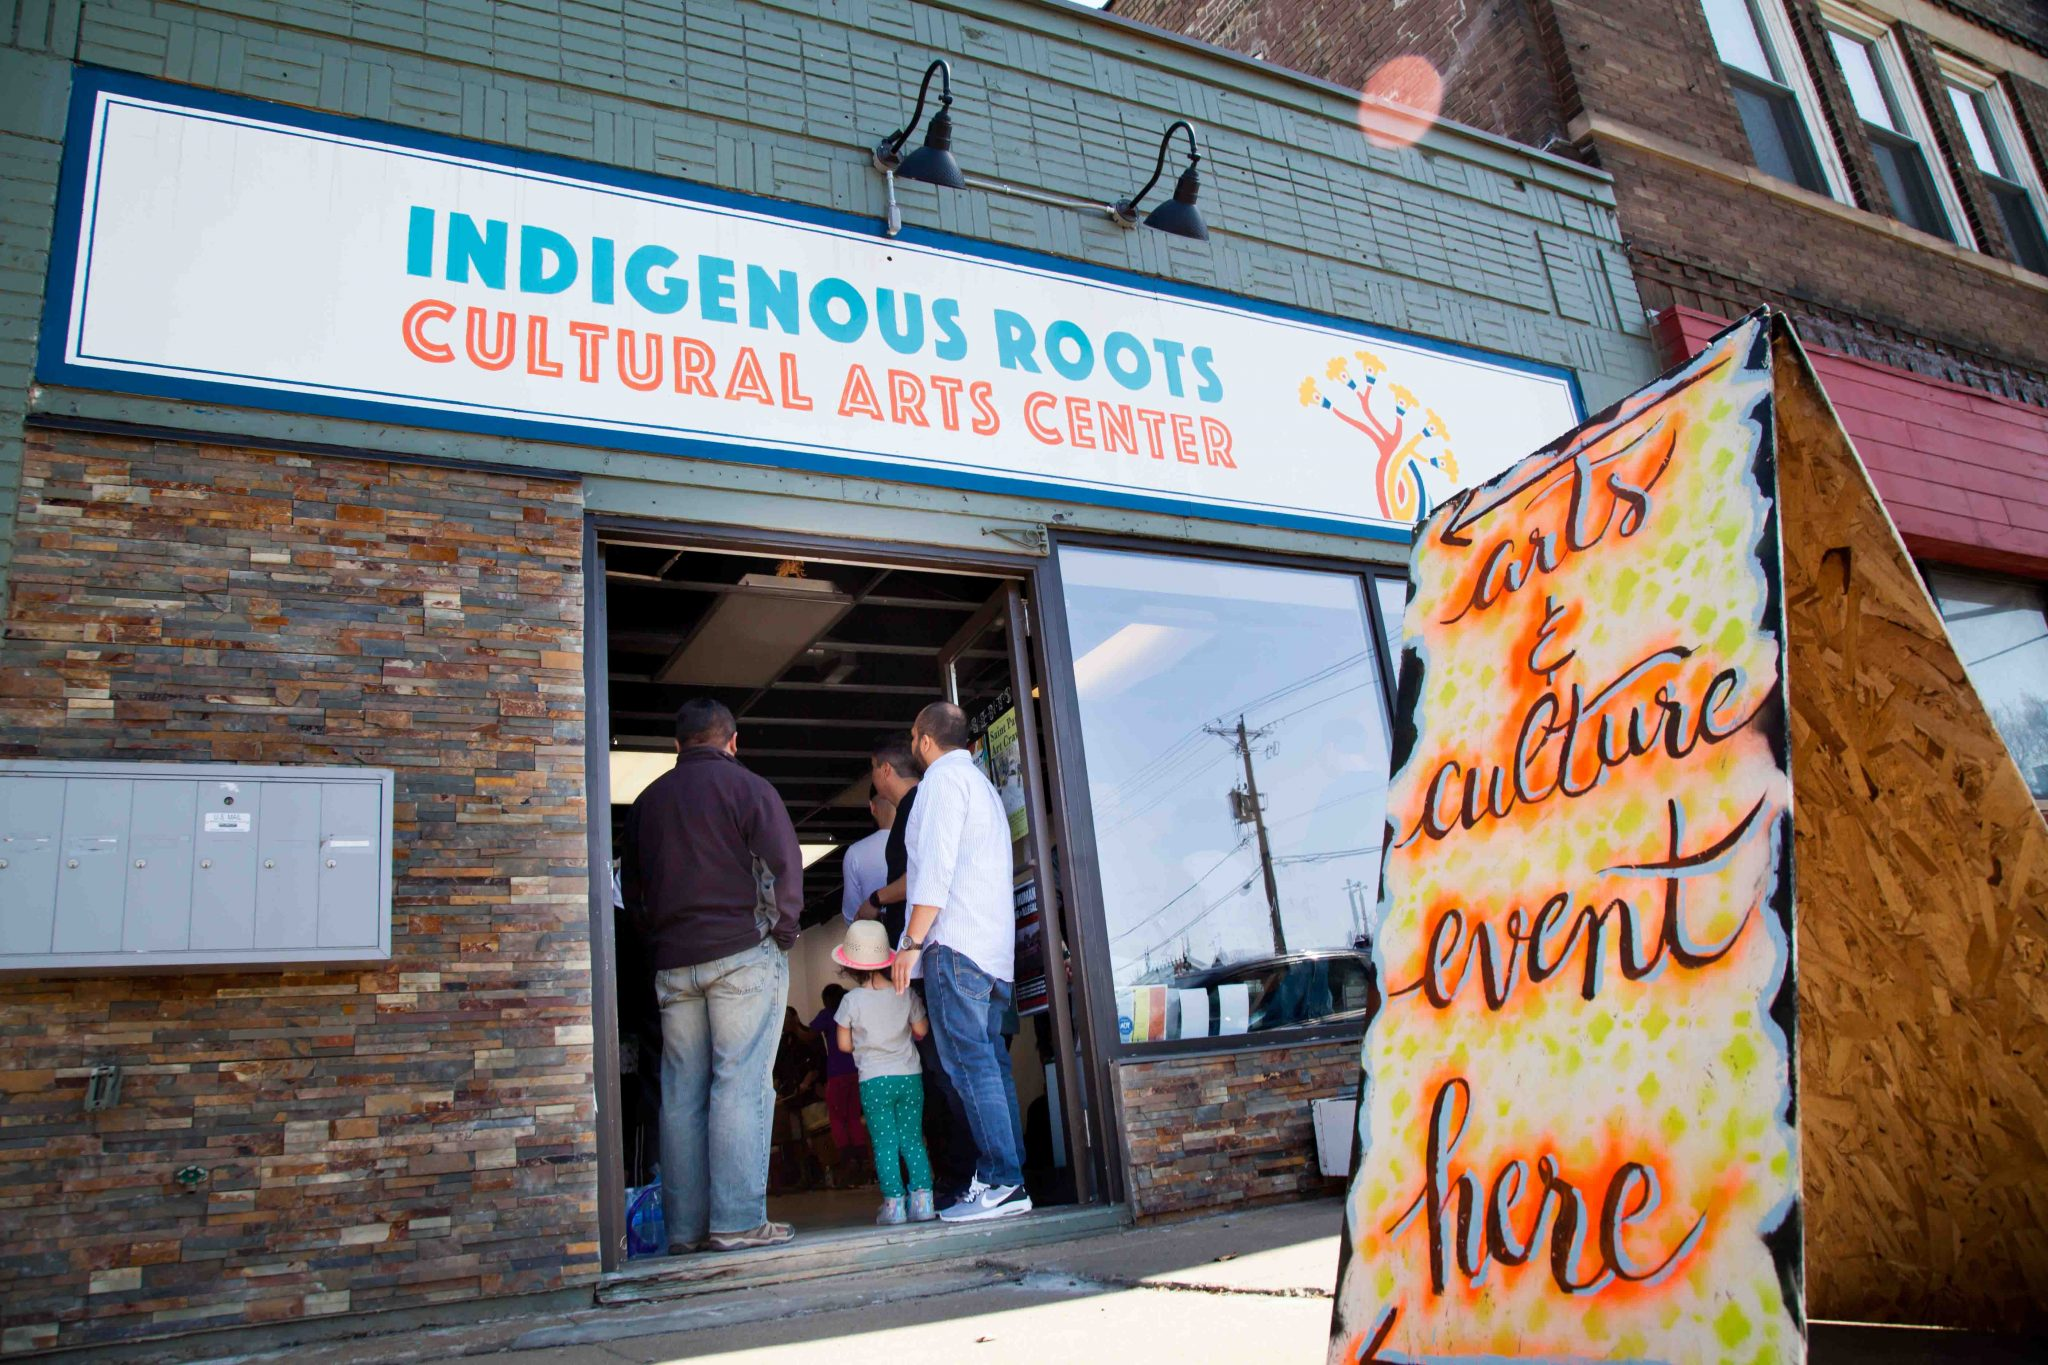 A group of people enter the Indigenous Roots Cultural Arts Center for an event